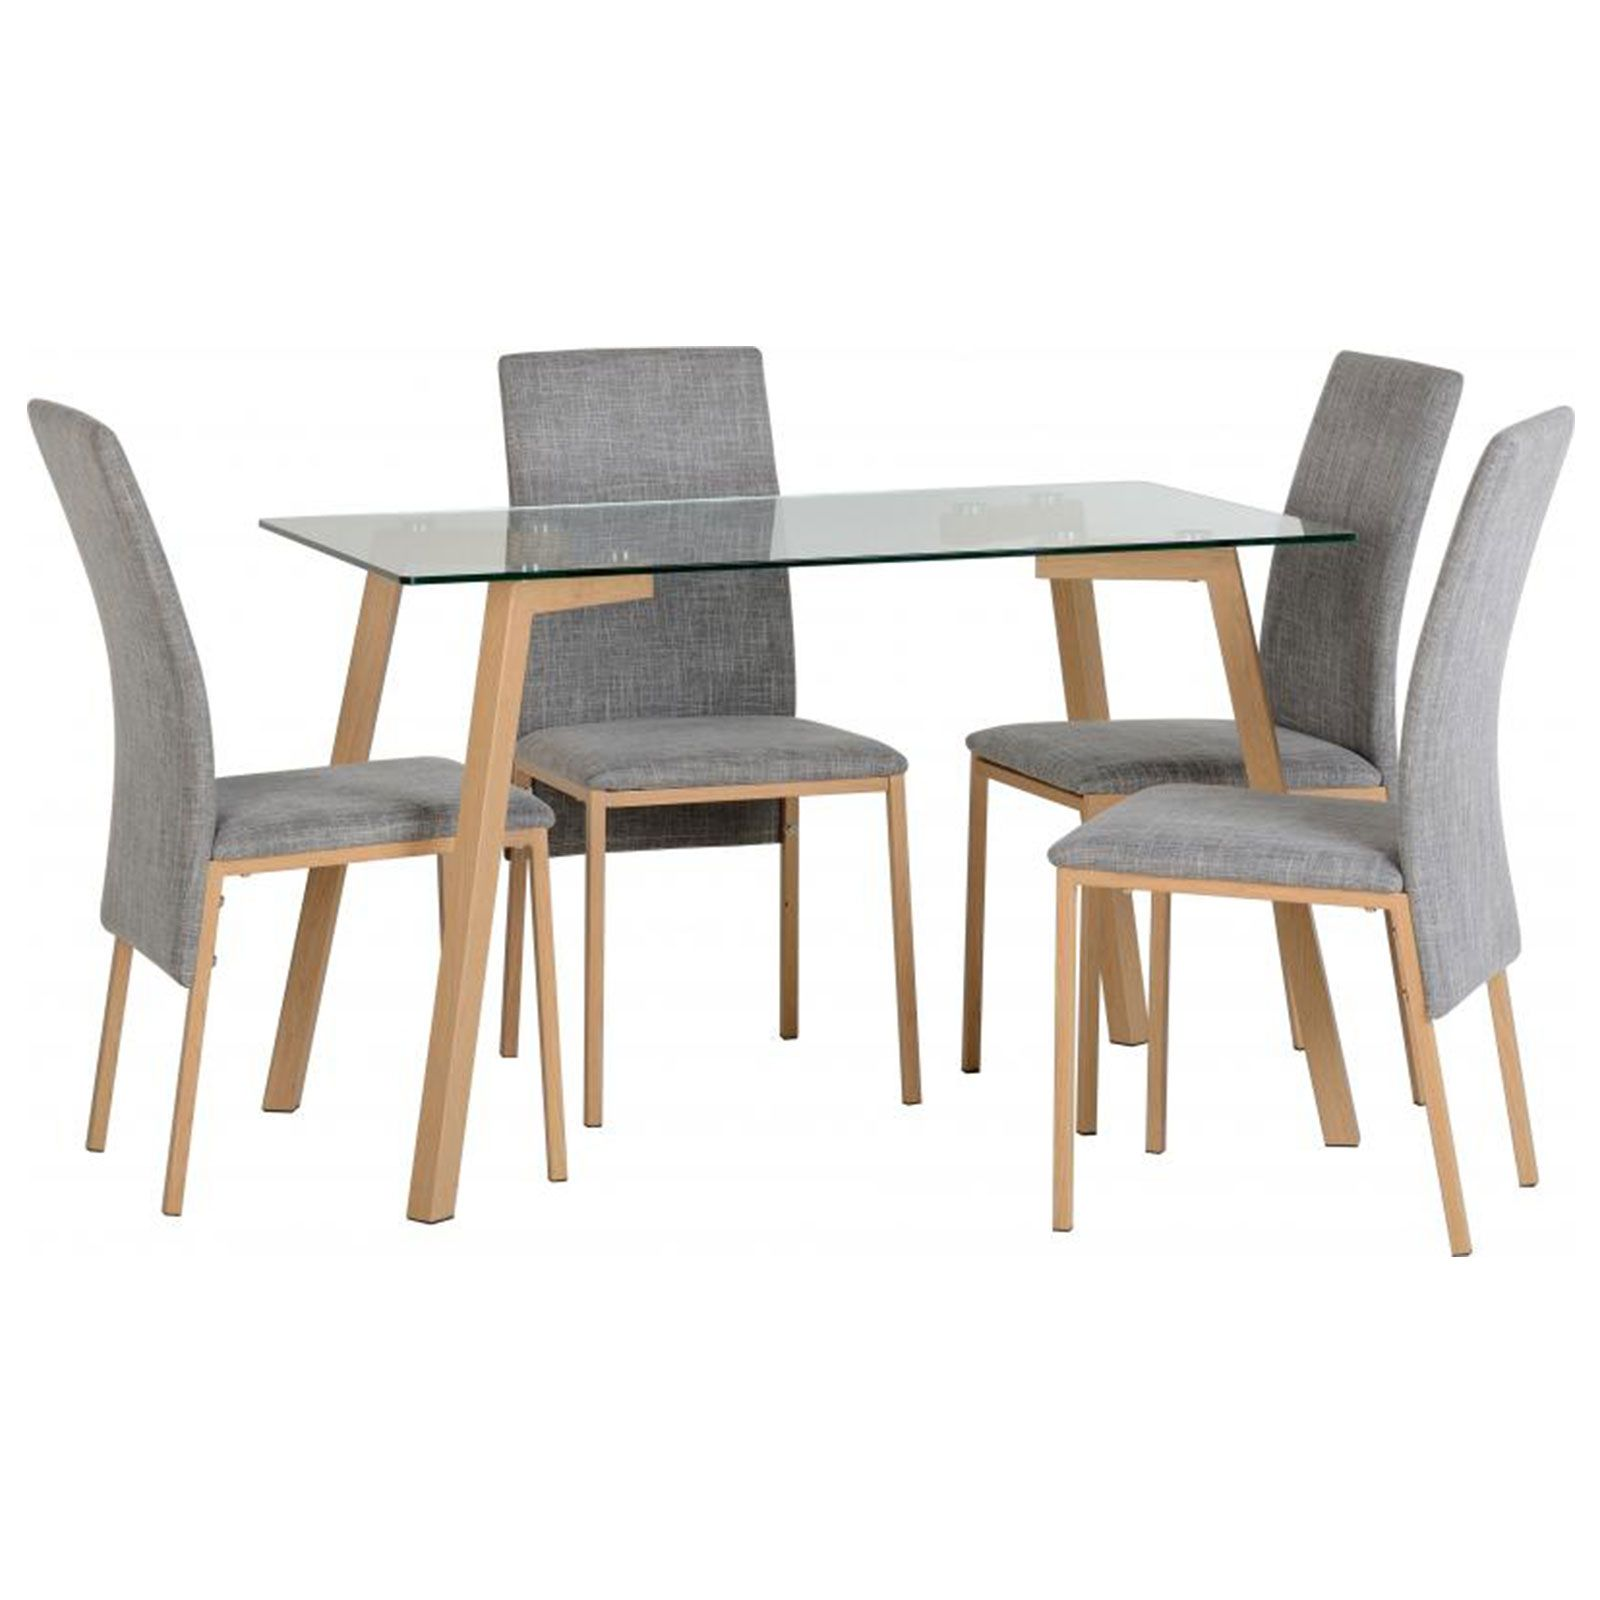 Brilliant Morton Clear Glass Dining Set With Grey Fabric Chairs Andrewgaddart Wooden Chair Designs For Living Room Andrewgaddartcom